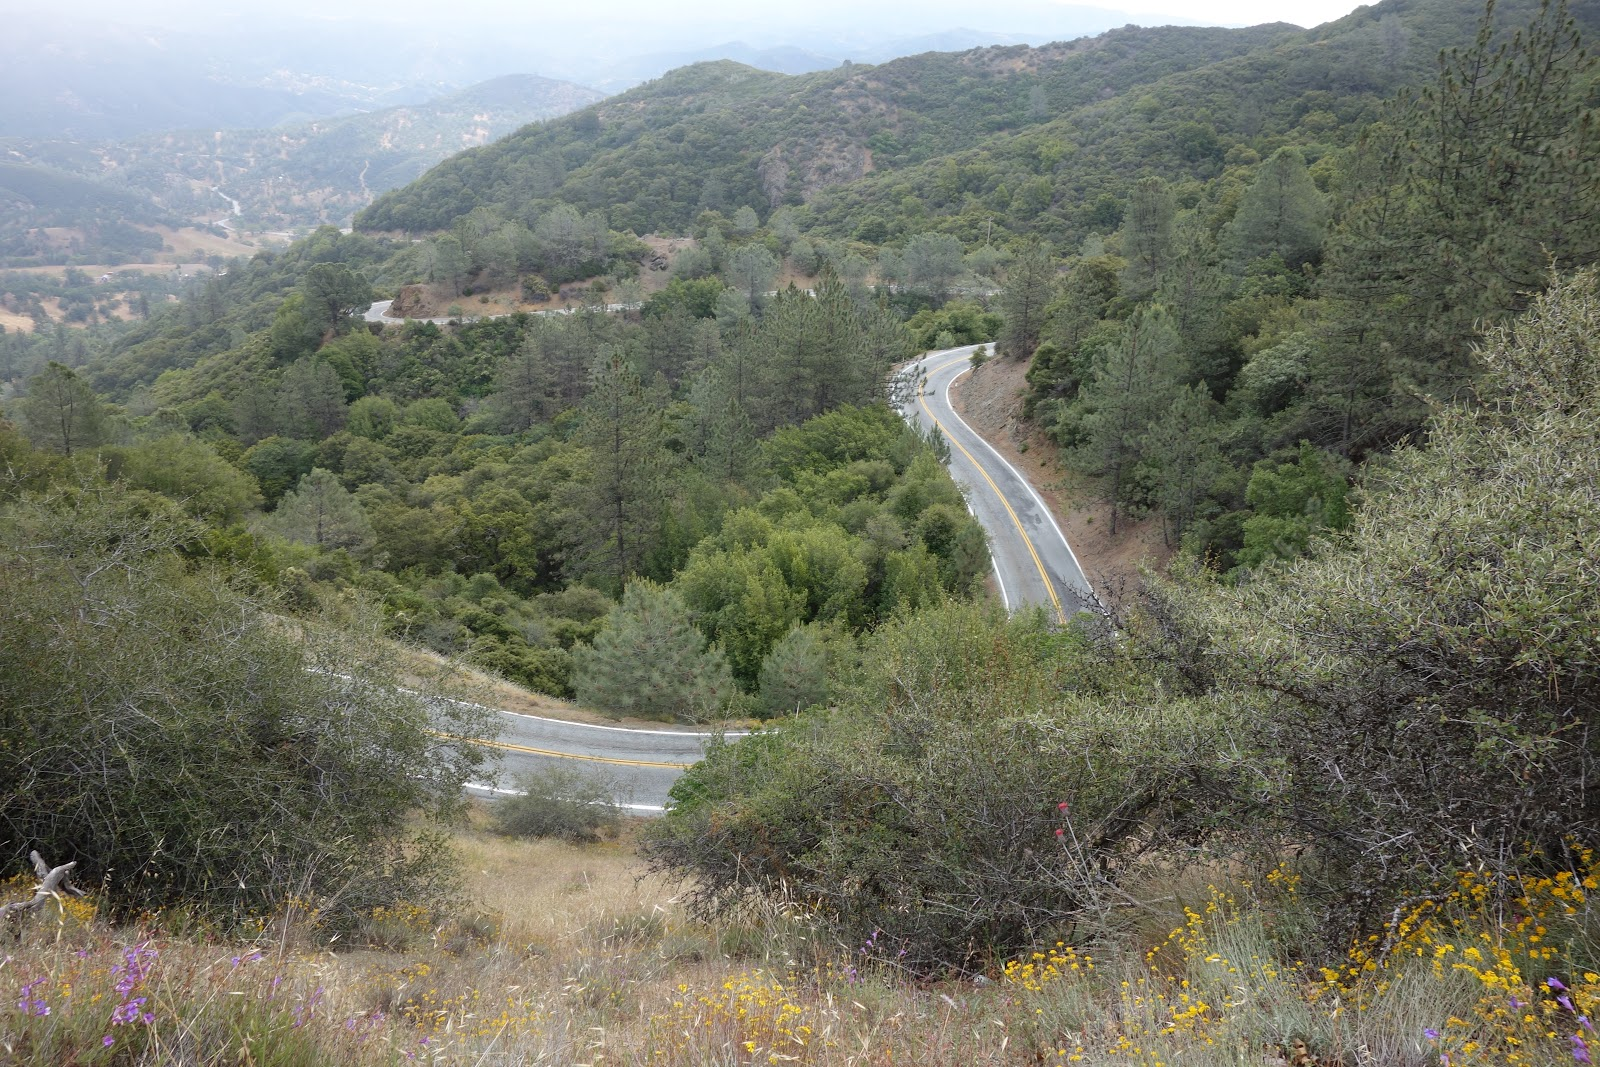 Curvy roadway on climb up Mt. Hamilton east to Lick Observatory Silicon Valley